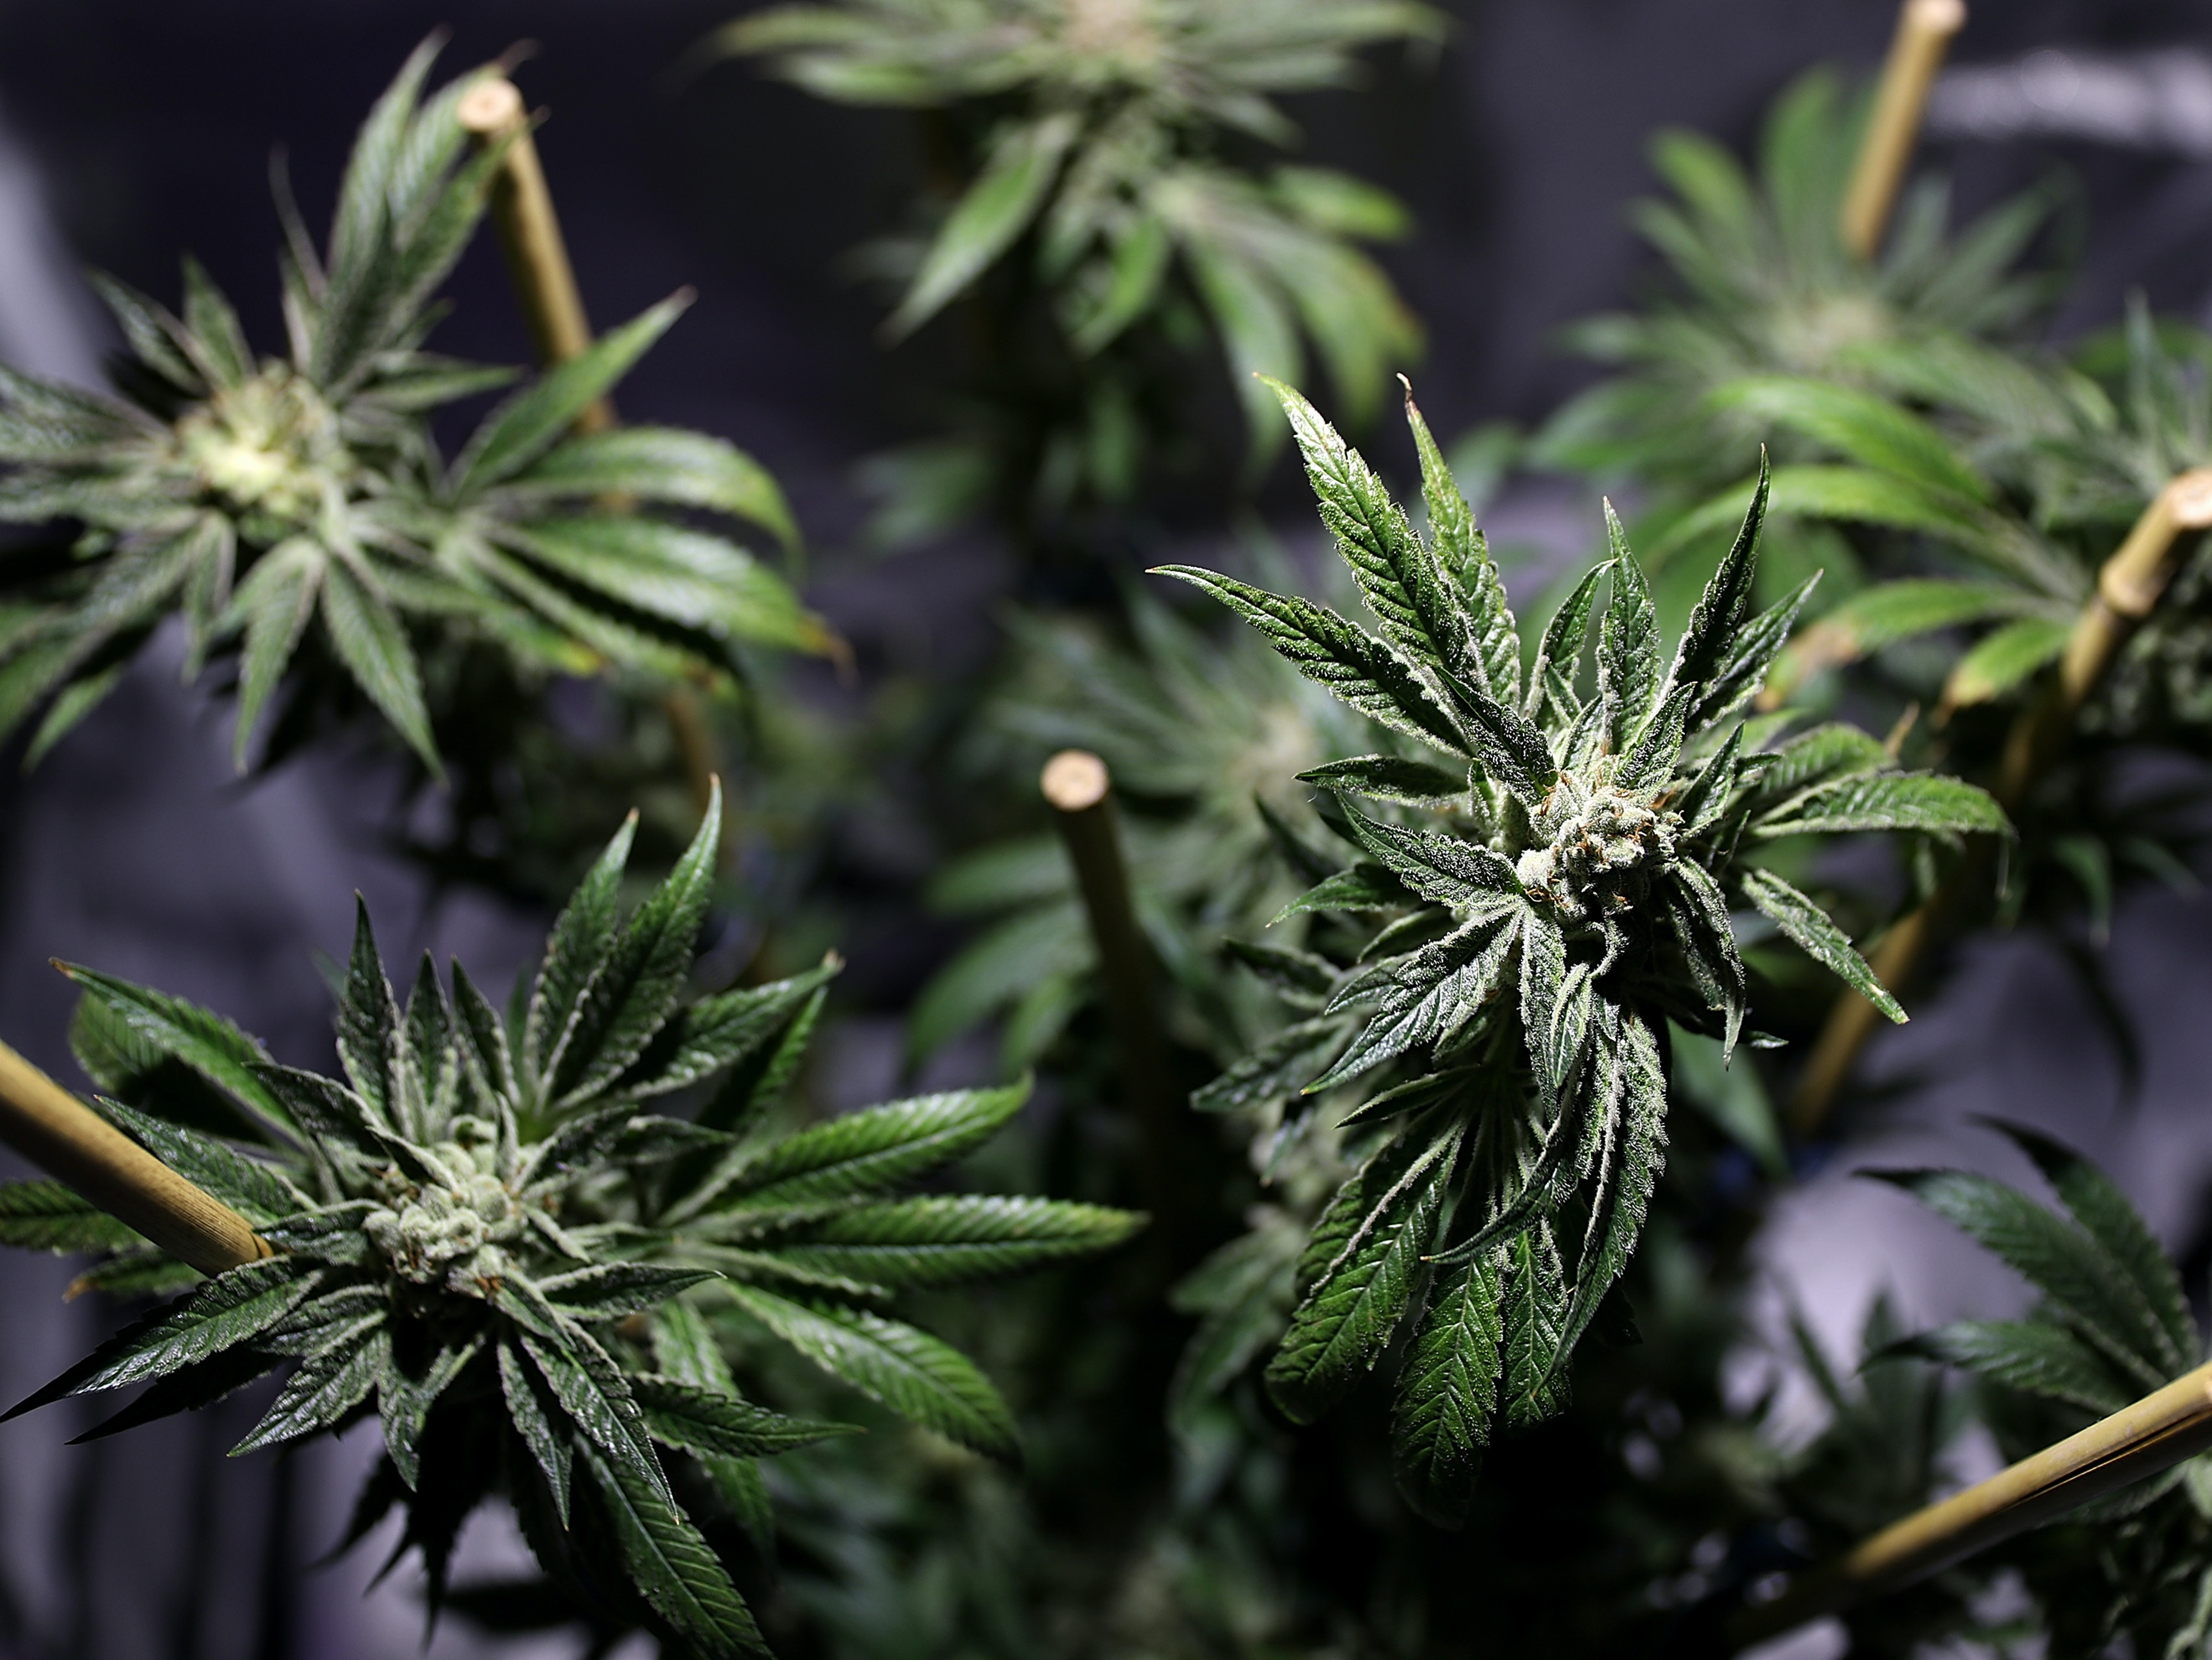 OAKLAND, CA - JUNE 22:  A marijuana plant is displayed during the 2016 Cannabis Business Summit & Expo  on June 22, 2016 in Oakland, California. Policy makers and innovators gathered for the three-day long Cannabis Business Summit & Expo.  (Photo by Justin Sullivan/Getty Images)